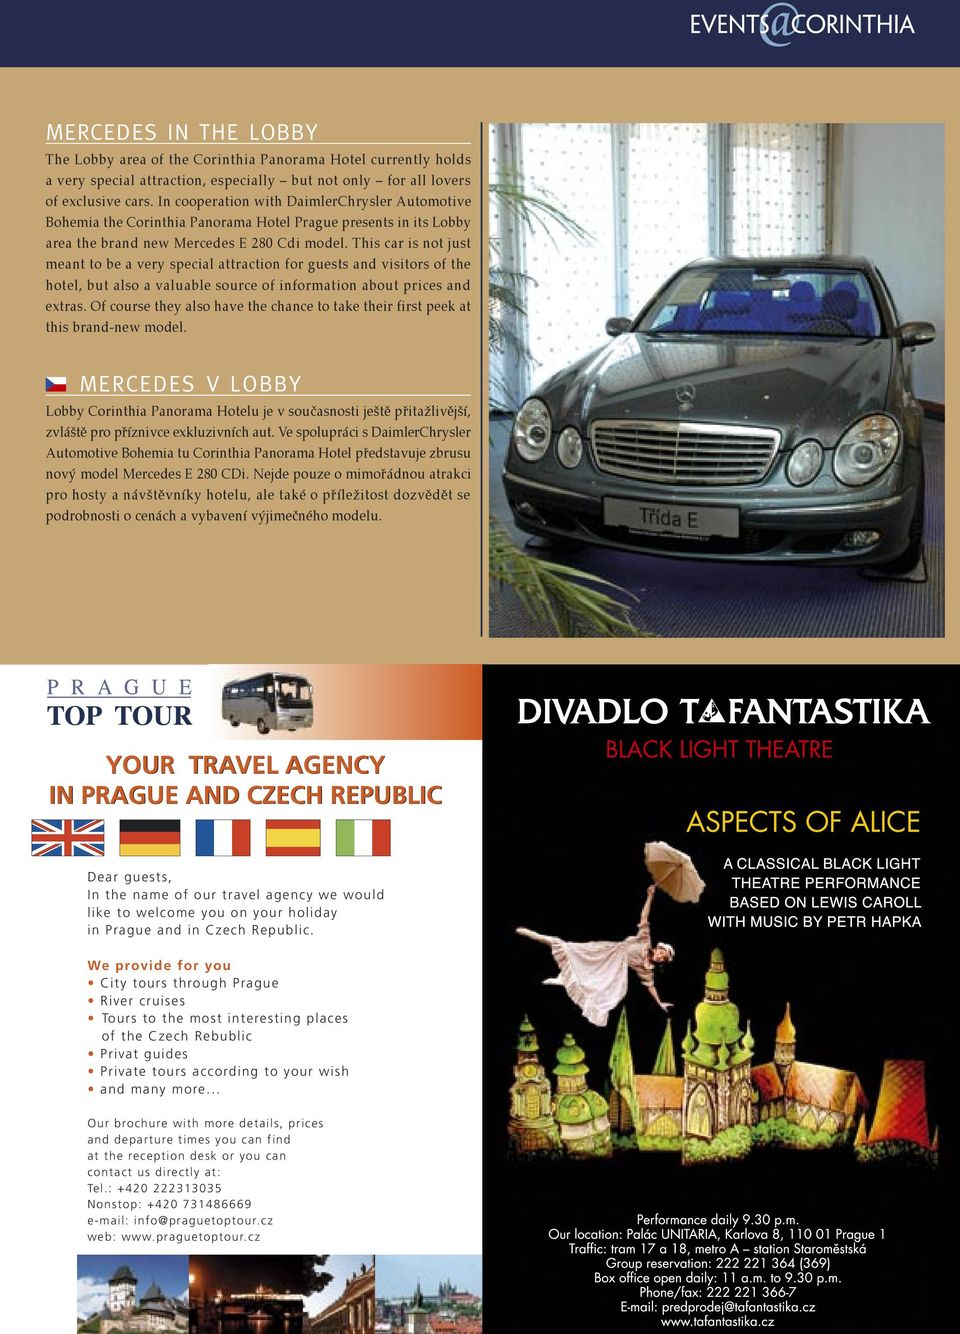 This car is not just meant to be a very special attraction for guests and visitors of the hotel, but also a valuable source of information about prices and extras.